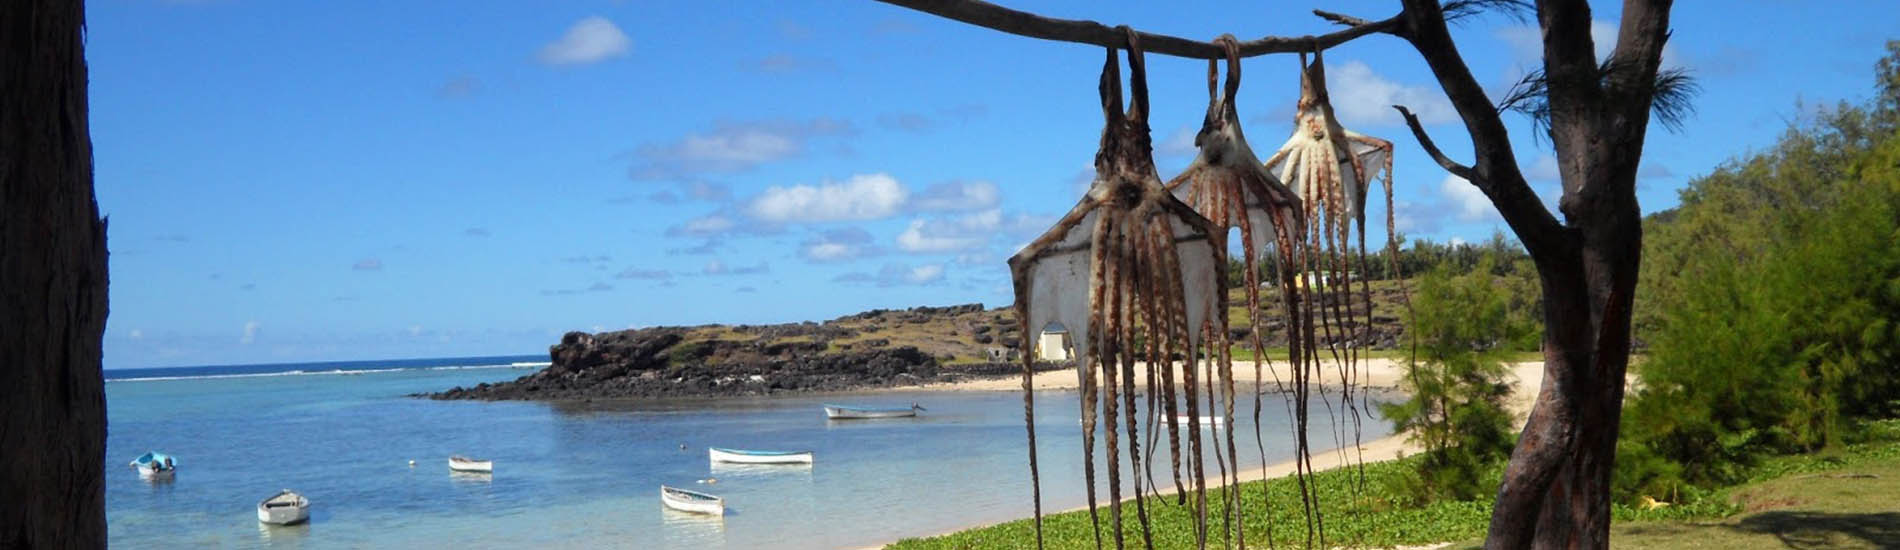 octopus-drying-rodrigues-island